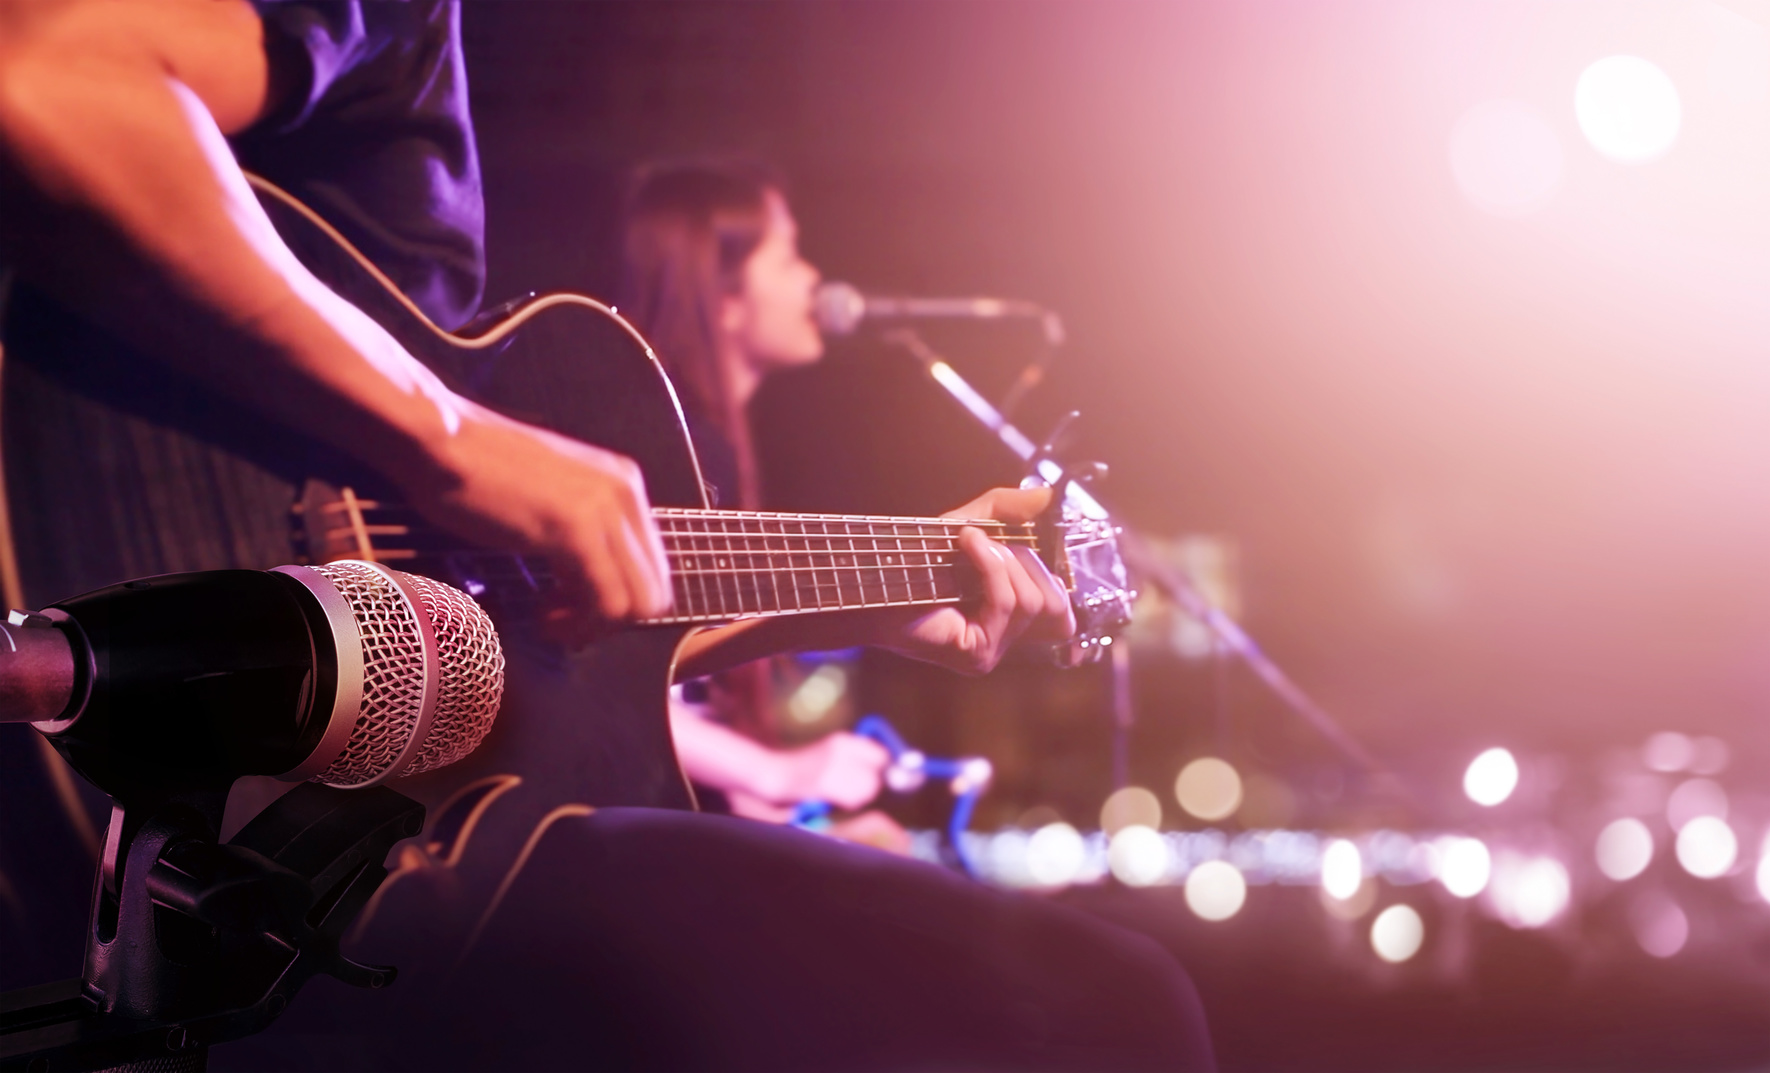 A Freelance Musician's Guide to Getting Paid